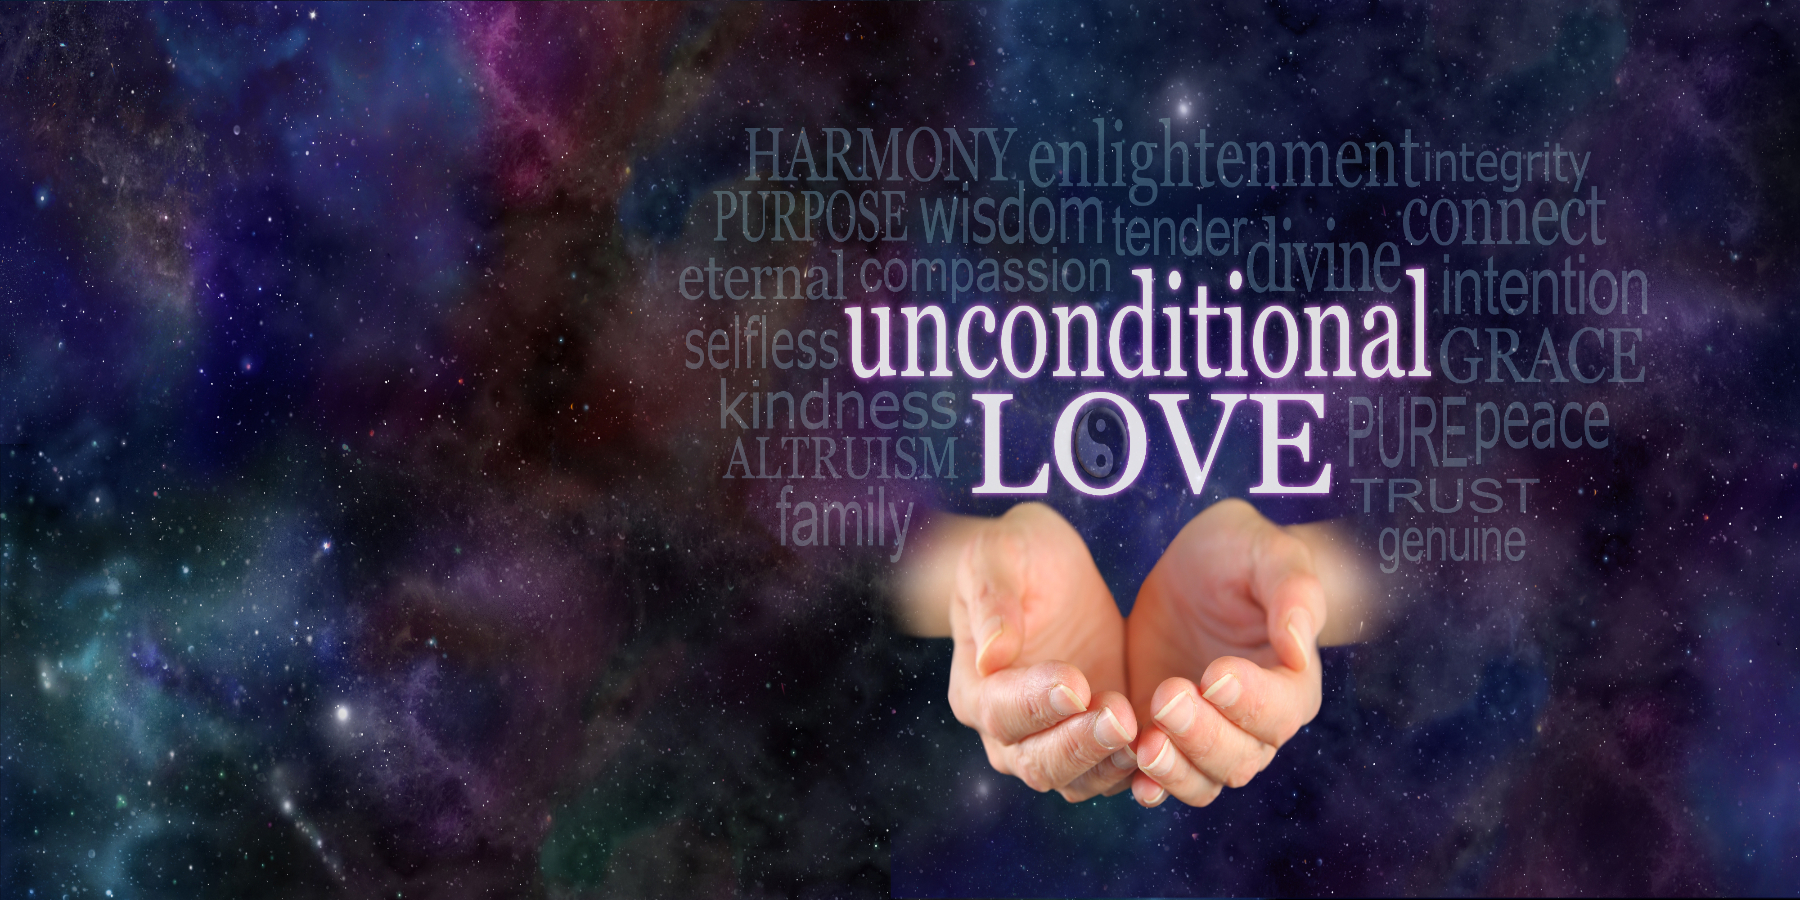 A guide to cultivating compassion in your life. Blog by Leo Babuta for Every Home Matters